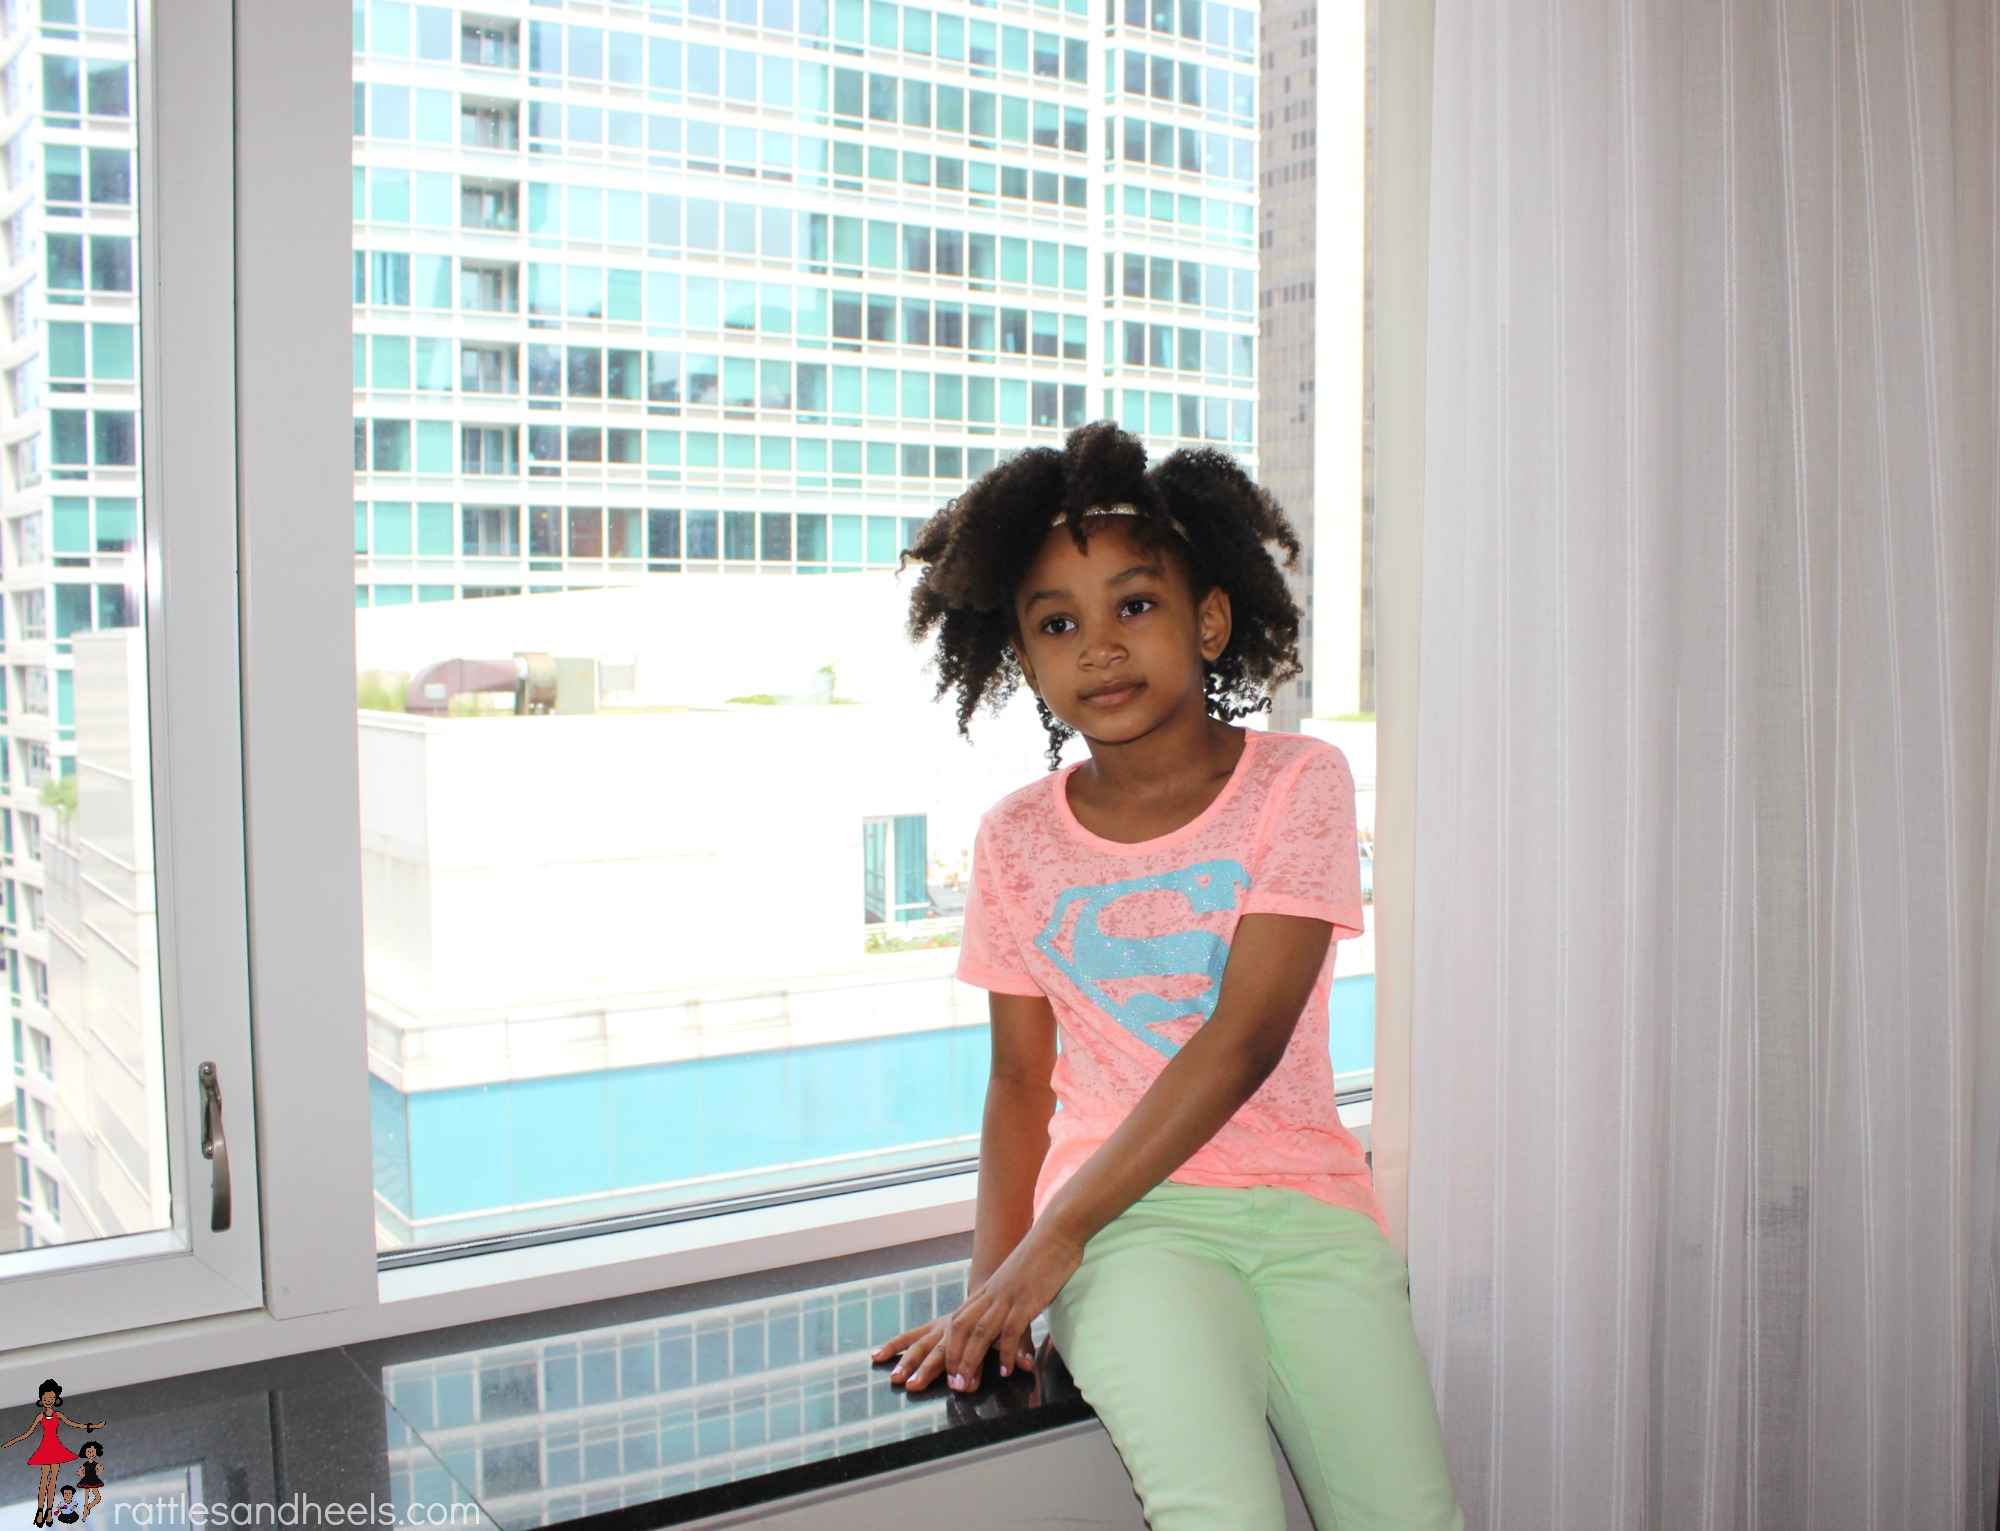 @rattlesandheels's cover photo for 'Where to stay in Chicago with kids - Rattles & Heels'